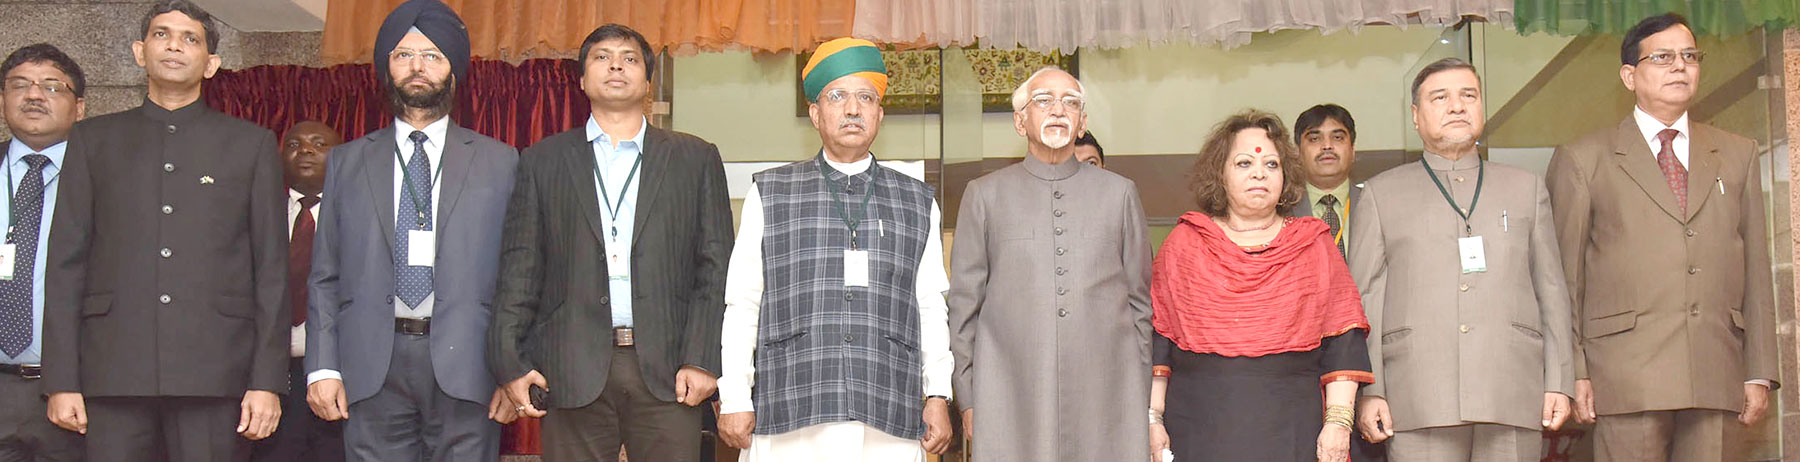 The Vice President, Shri M. Hamid Ansari and Smt. Salma Ansari at the New Building of the High Commission of India, in Abuja, Nigeria on September 26, 2016. The Minister of State for Finance and Corporate Affairs, Shri Arjun Ram Meghwal is also seen